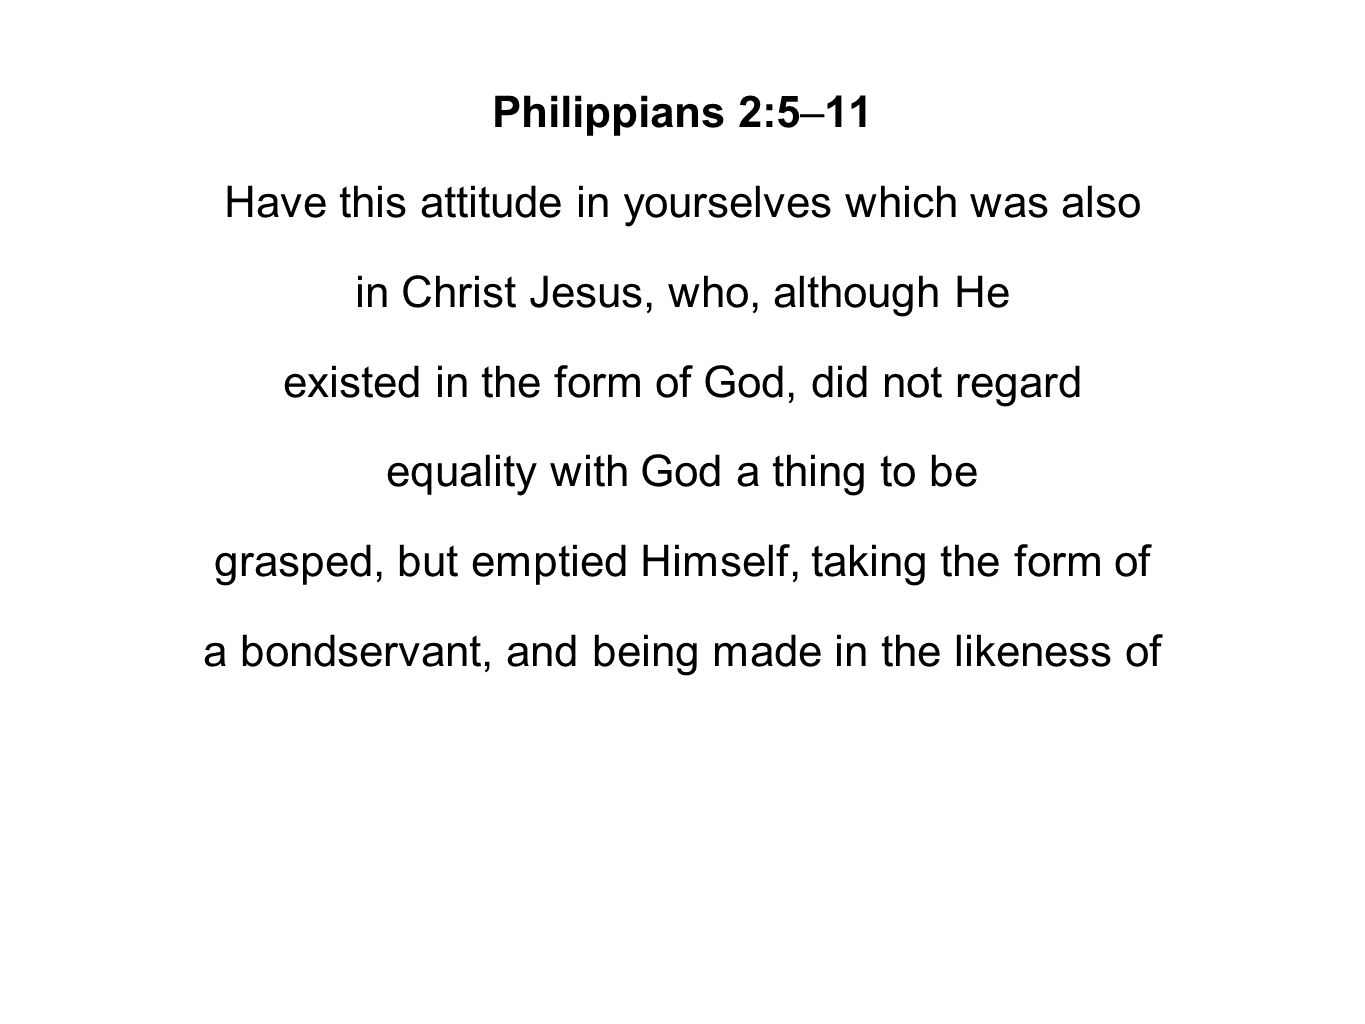 Philippians 2:5–11 Have this attitude in yourselves which was also in Christ Jesus, who, although He existed in the form of God, did not regard equality with God a thing to be grasped, but emptied Himself, taking the form of a bondservant, and being made in the likeness of